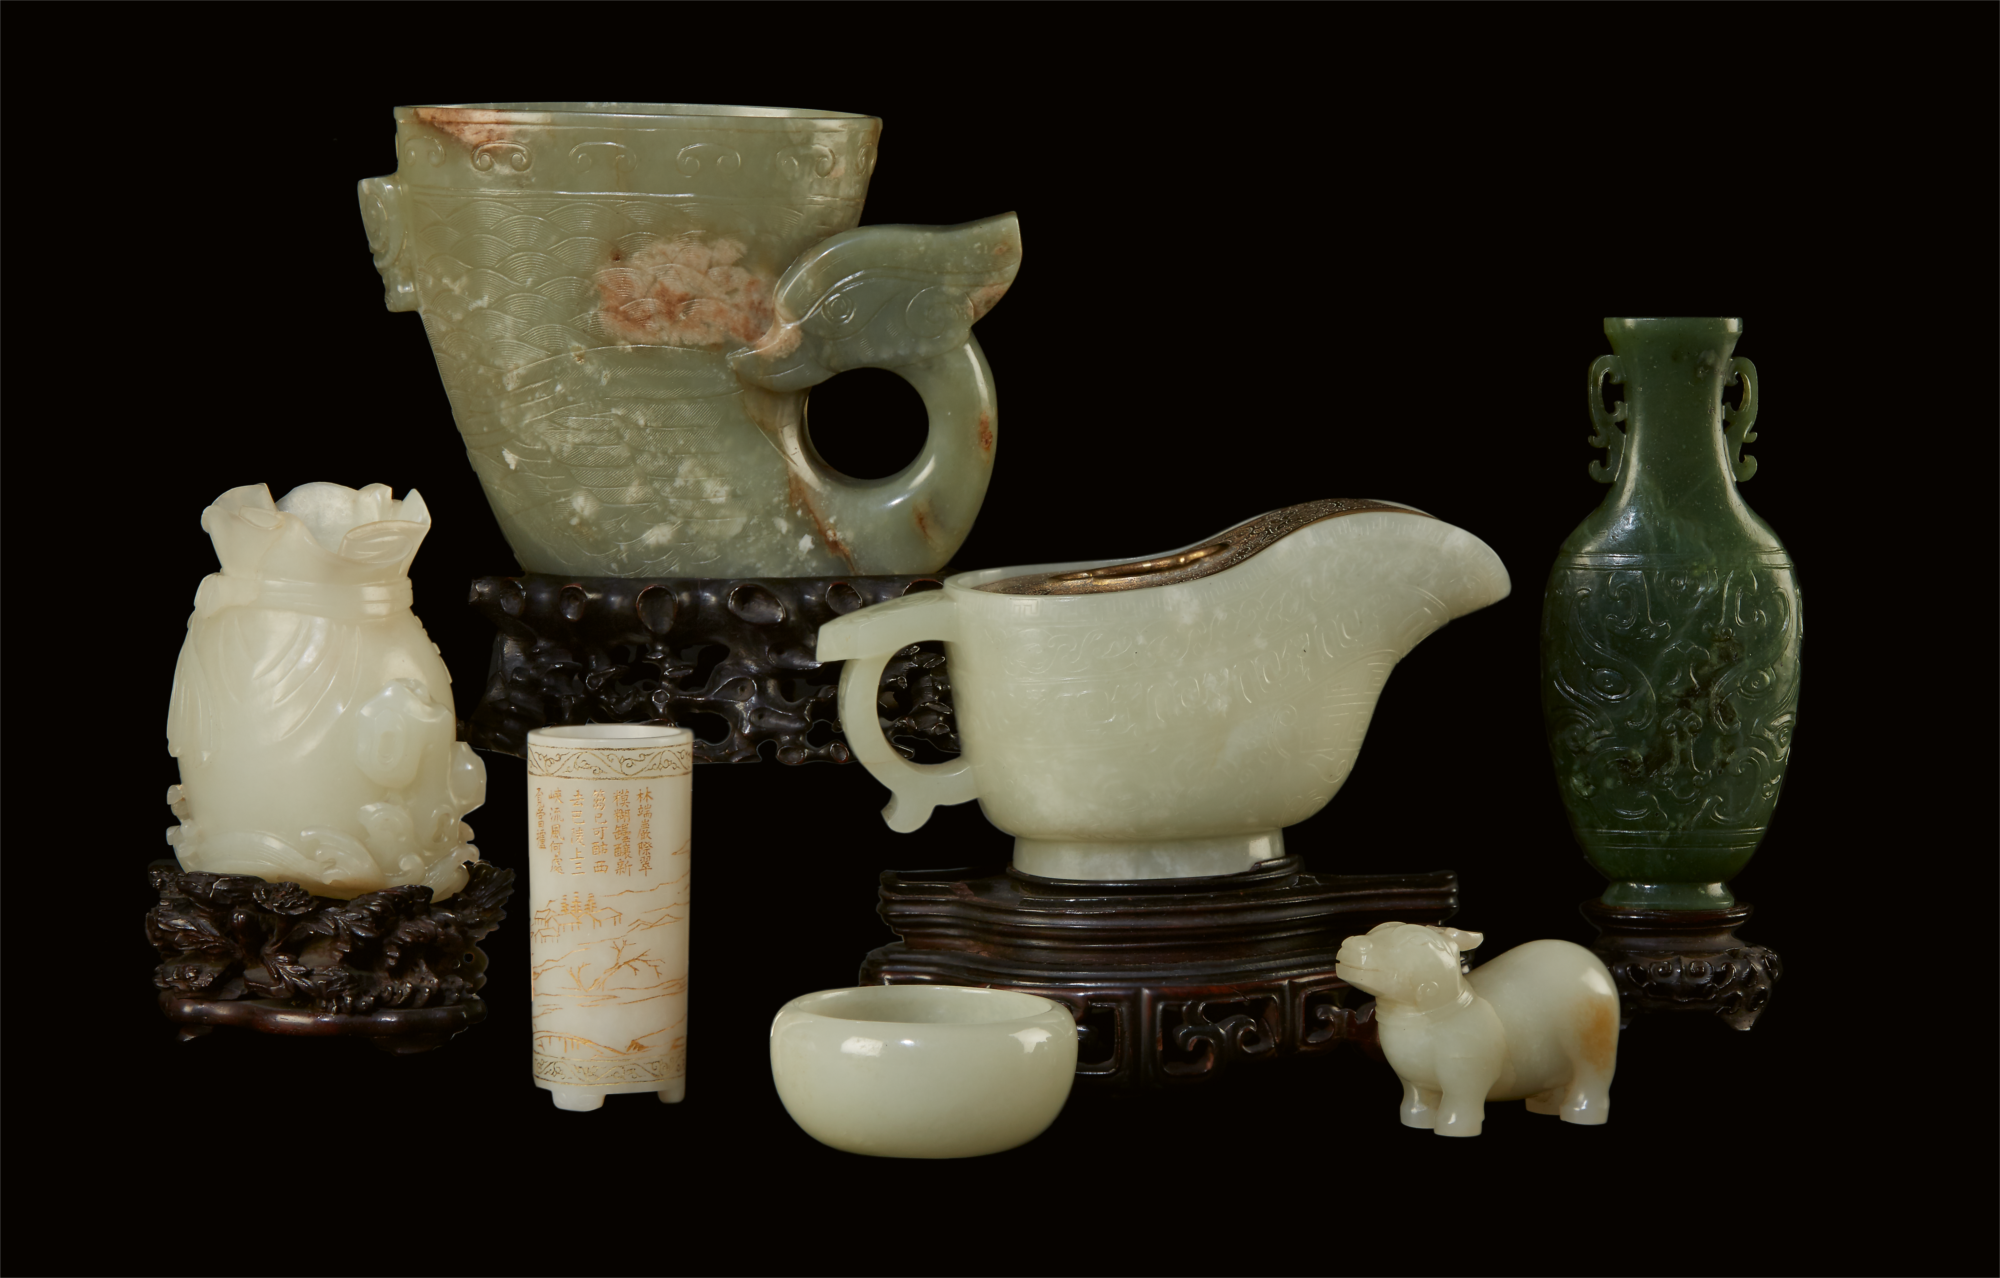 A sampling of Ming and Qing dynasty Chinese Jades from the collection of Dr. Frederic and Mrs. Madeleine Zeman, assembled by the Zemans from the 1930s to the 1960s.